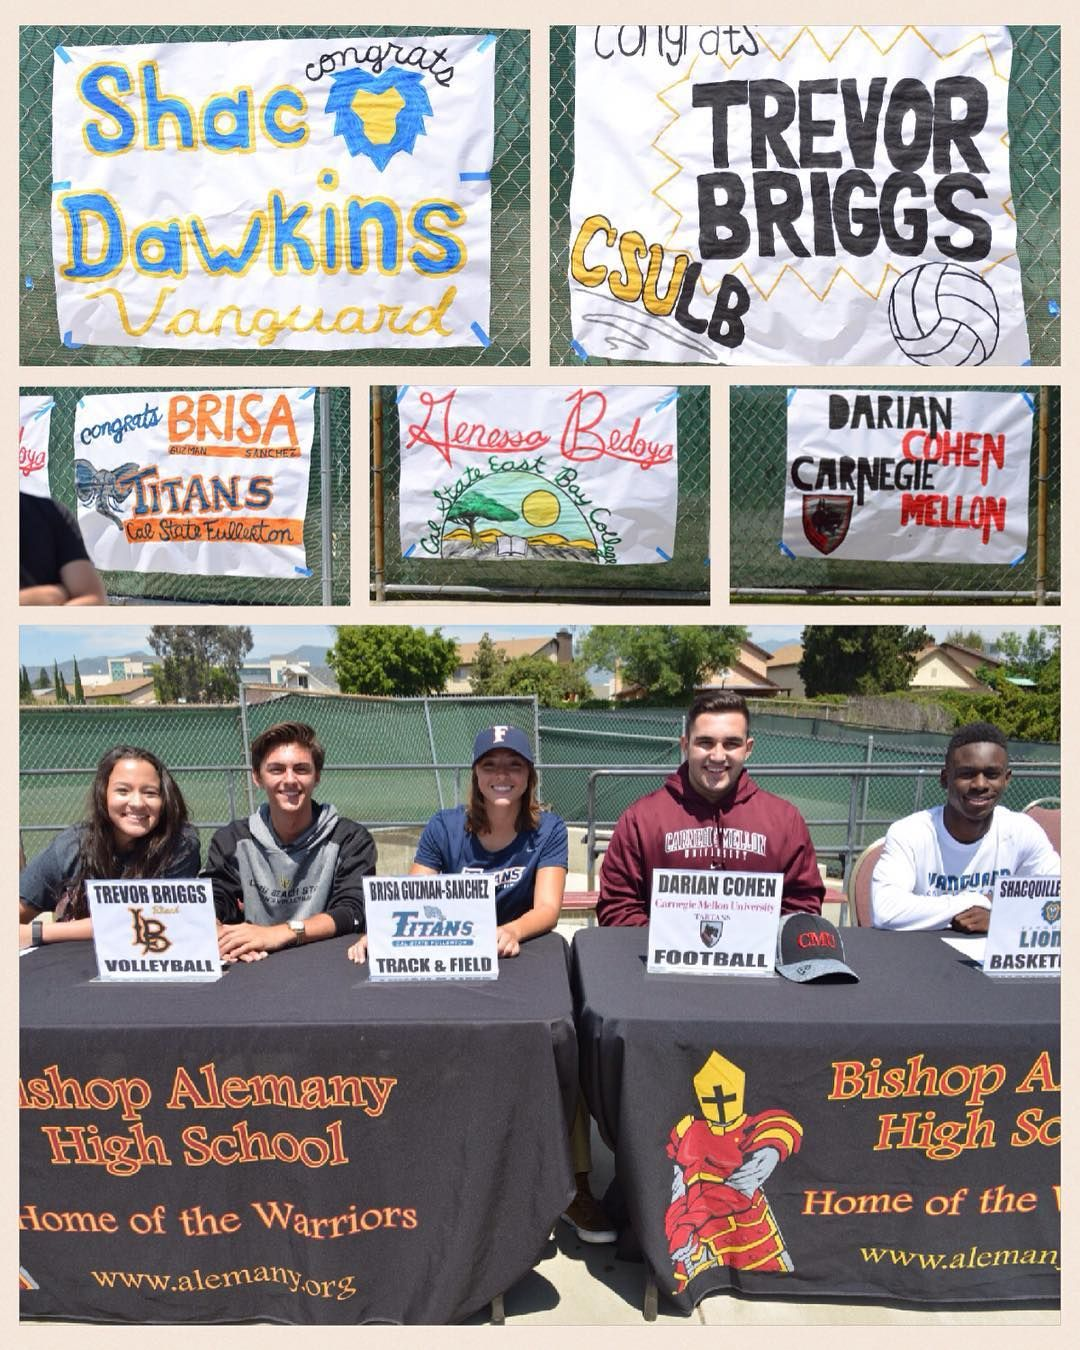 Five Student Athletes Signed With Colleges Today Genessa Bedoya Basketball Cal State East Bay Trevor Briggs Volleyball Cal State Student Athlete